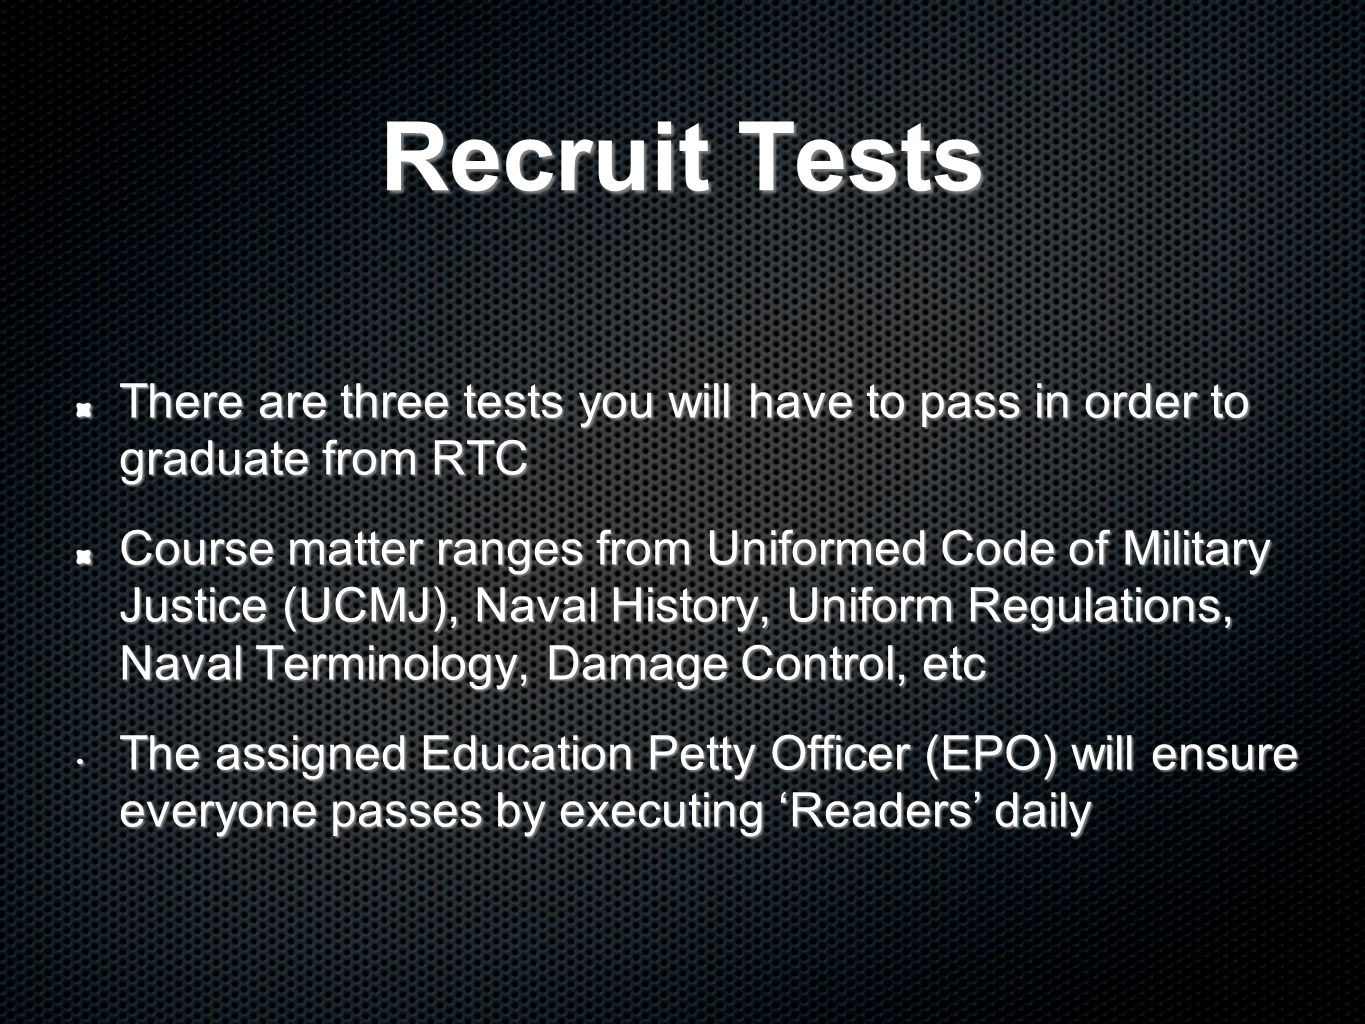 Recruit Tests There are three tests you will have to pass in order to graduate from RTC.